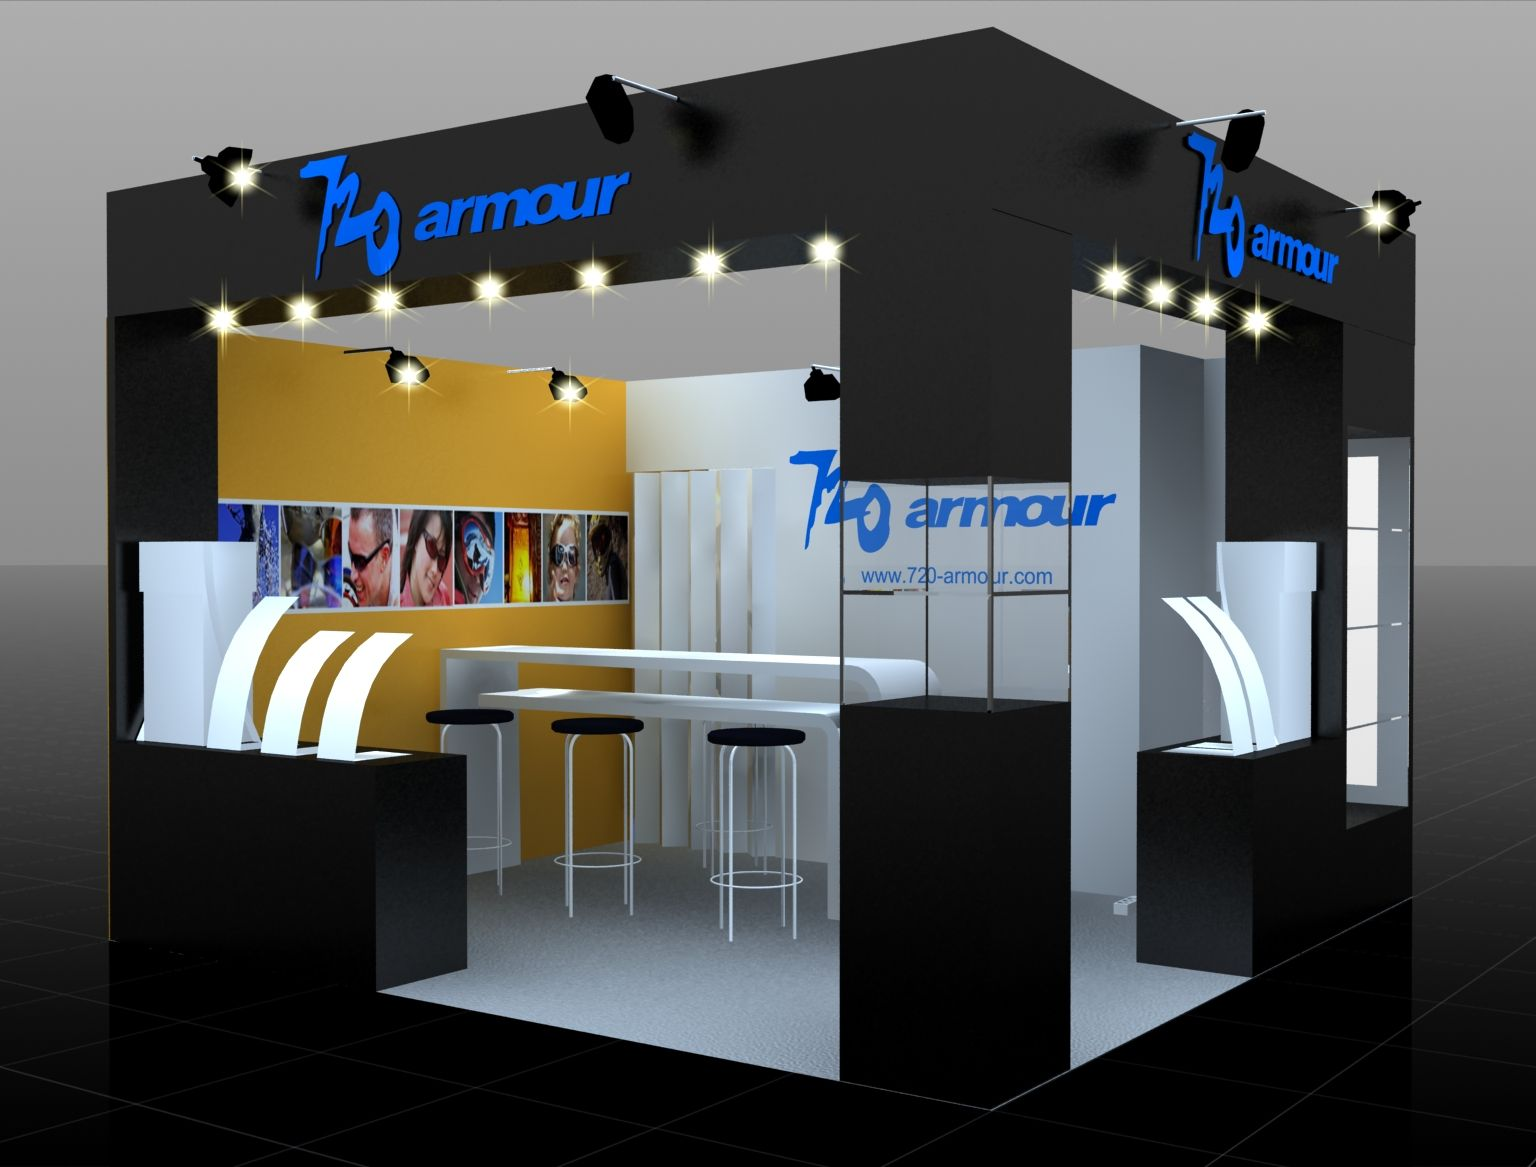 Exhibition Booth Design : Trade show booth layout design image